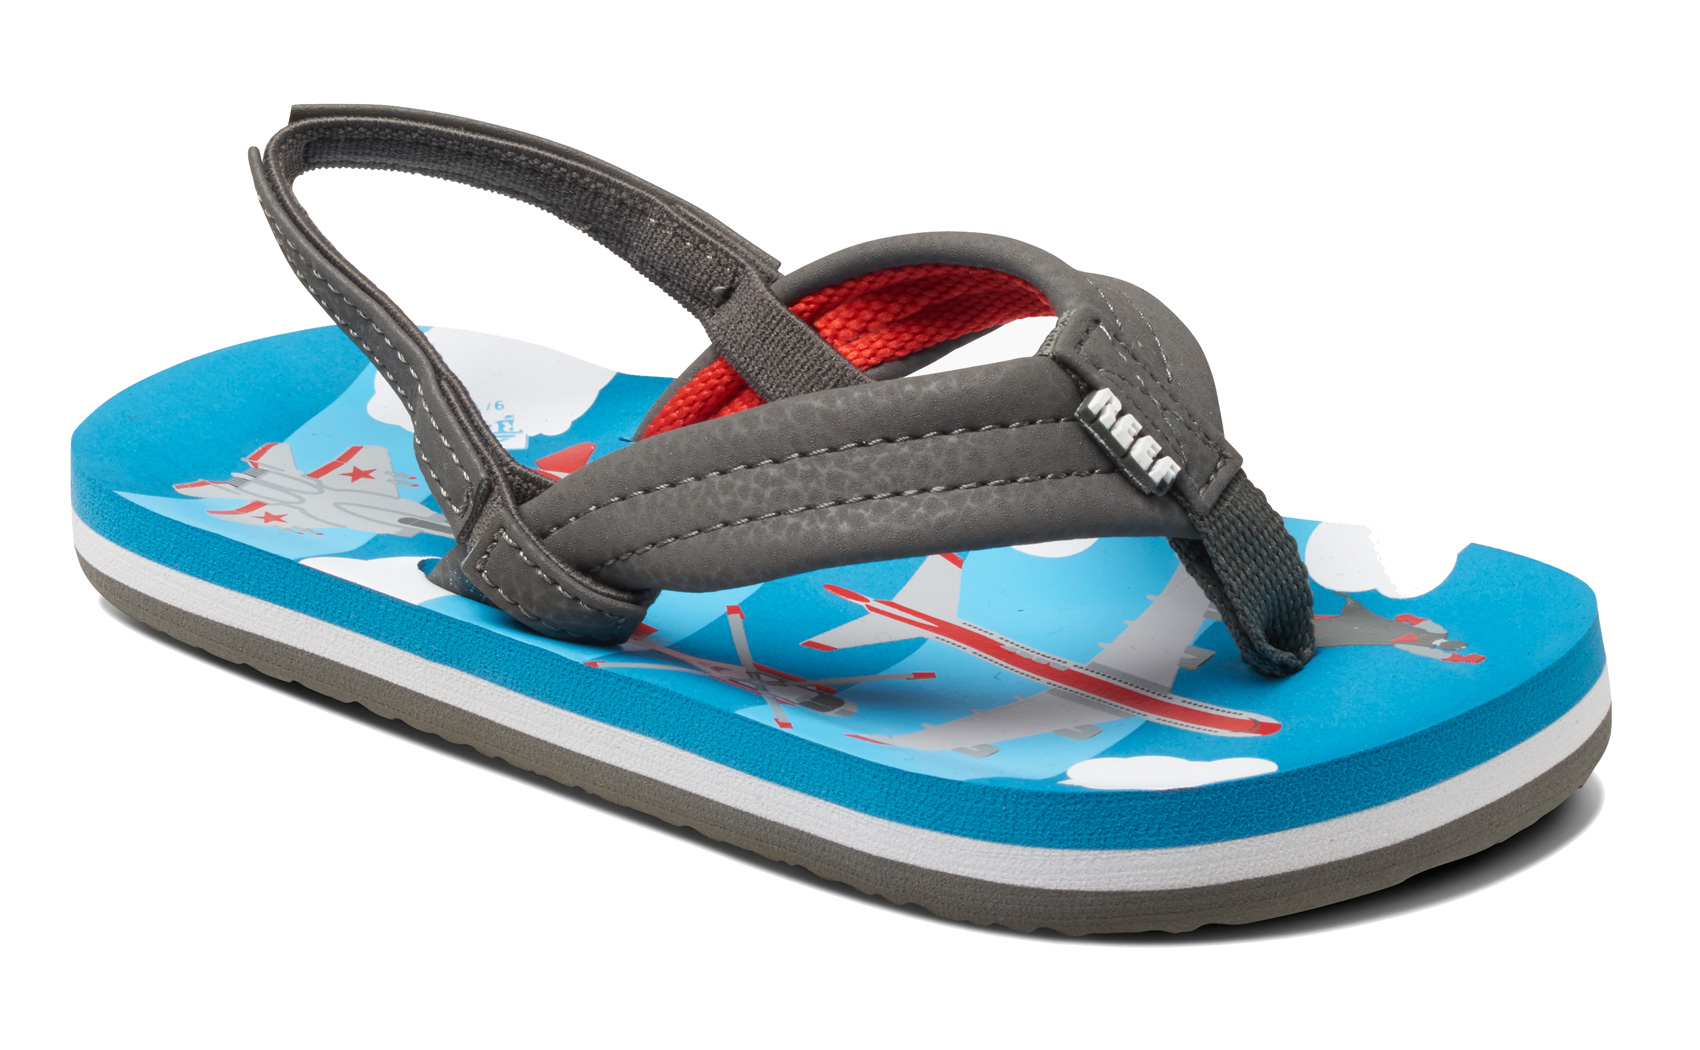 3e9476a13 Reef Toddlers Ahi Straps Flip Flop